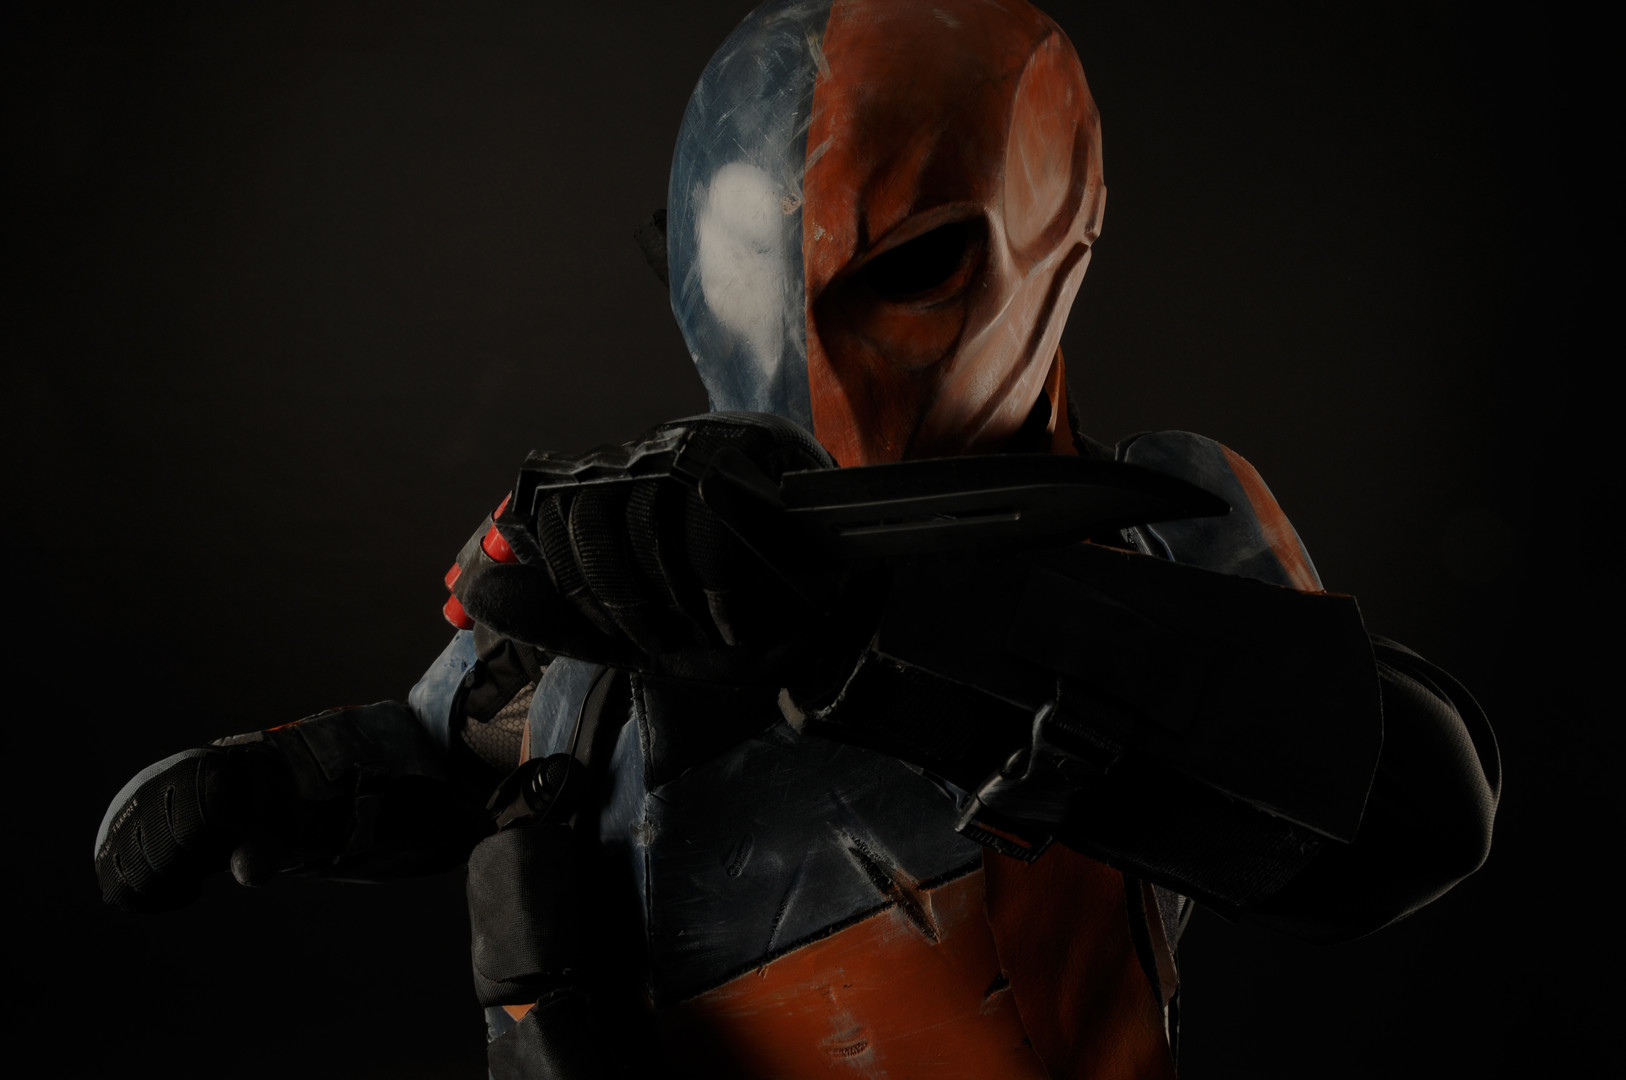 Deathstroke Photo by Droo Photography